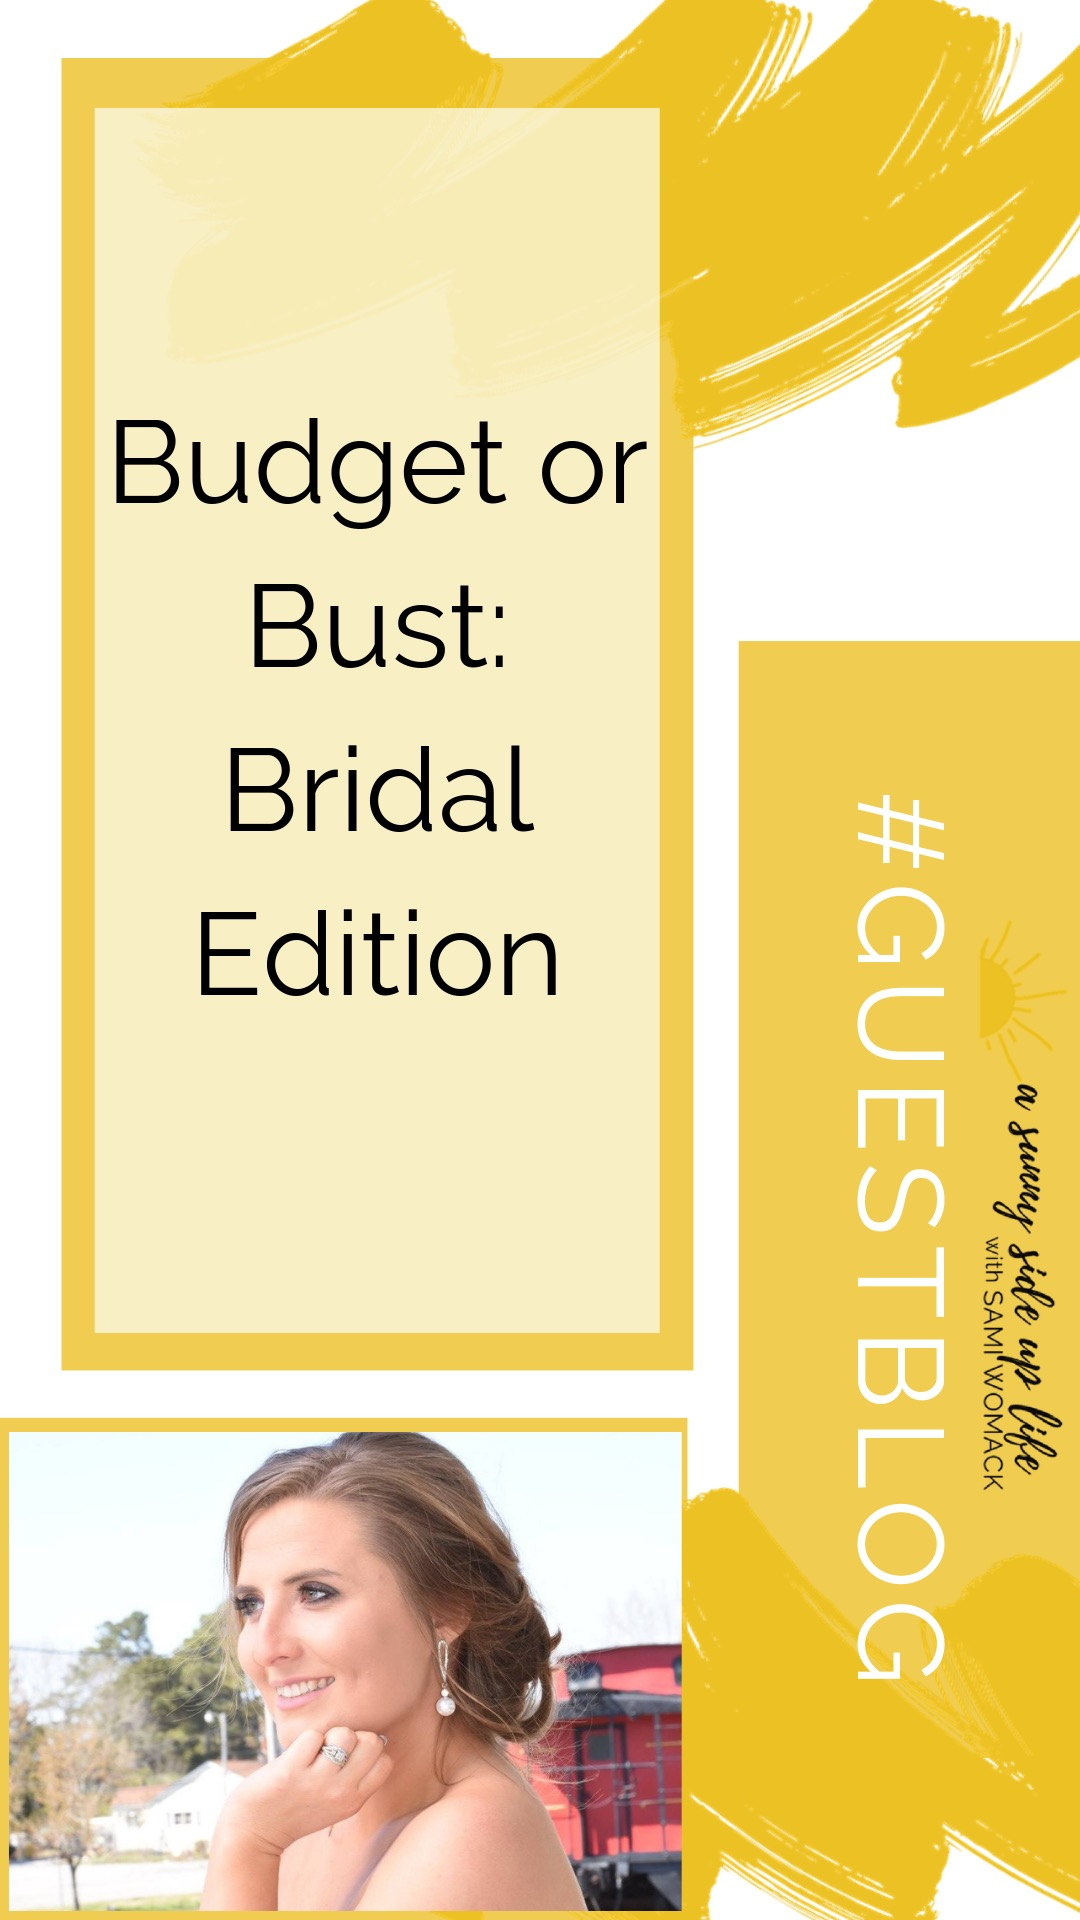 budget or bust bridal edition | wedding | wedding planning | how to | where to start | setting a wedding budget | wedding on a budget | budget friendly wedding ideas | bride on a budget | tips | frugal hacks | money saving ideas